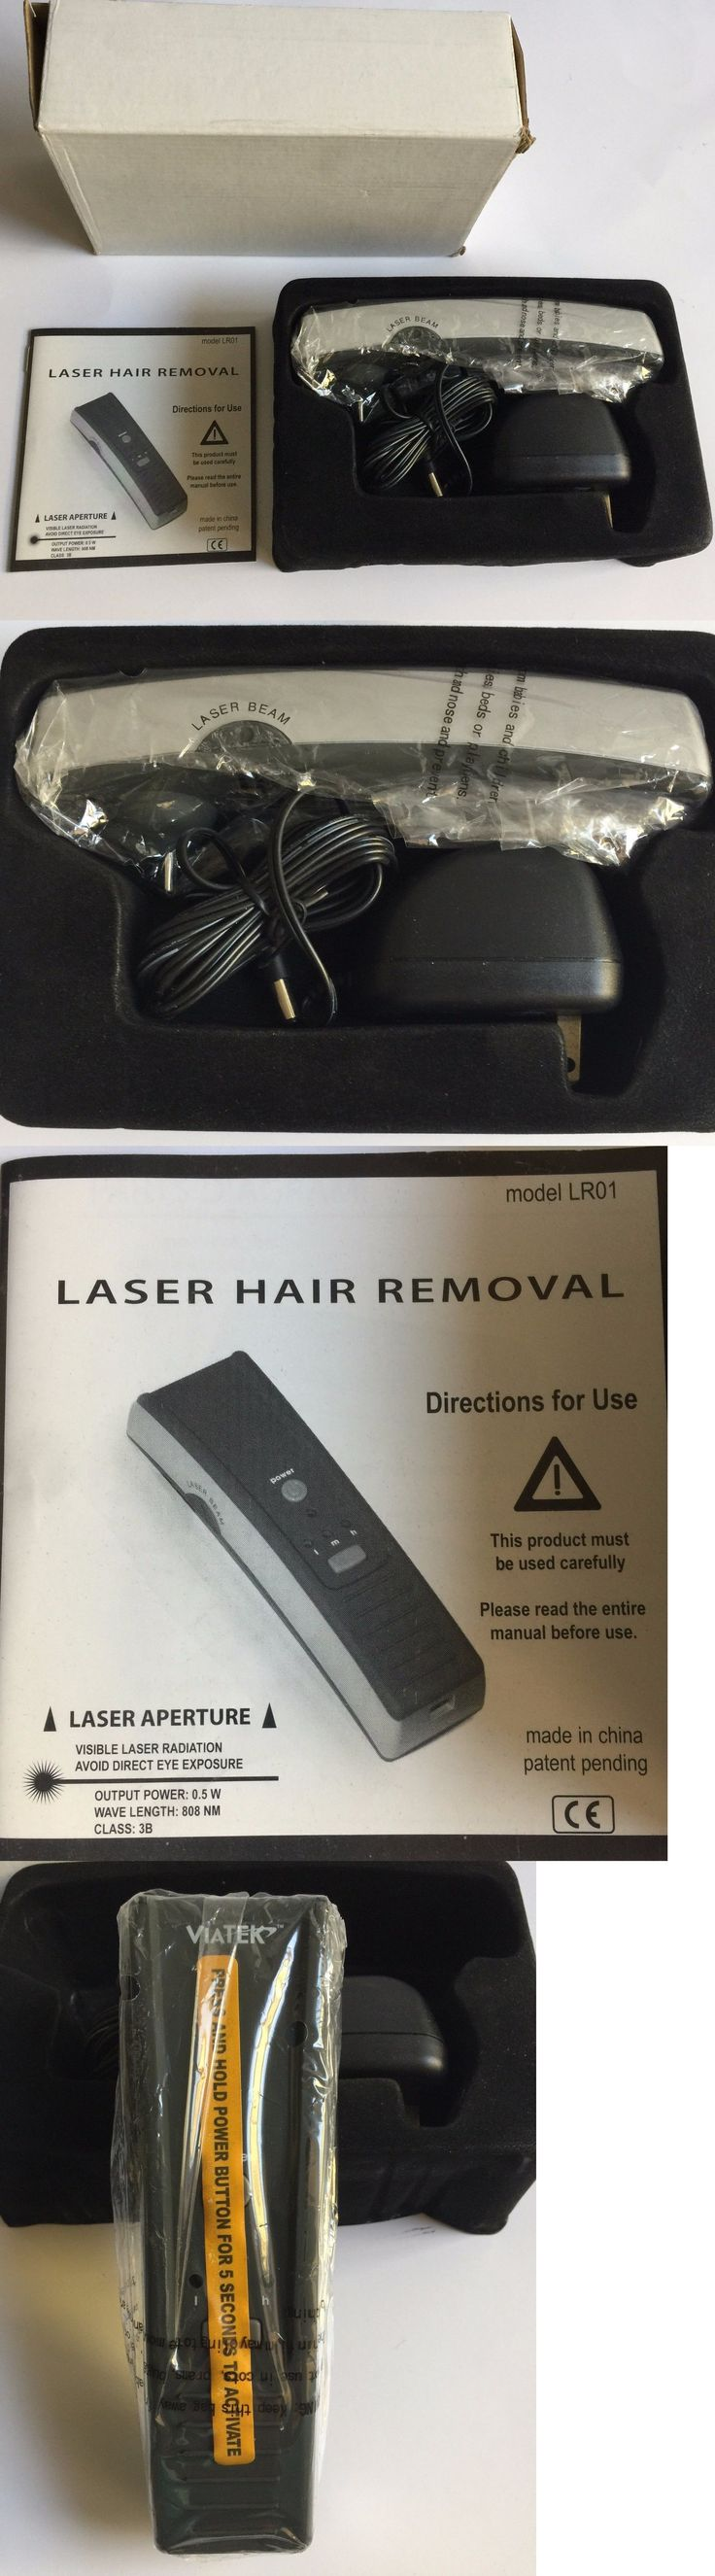 Laser Hair Removal and IPL: Viatek Laser Hair Removal System Brand New In Box -> BUY IT NOW ONLY: $114.0 on eBay!